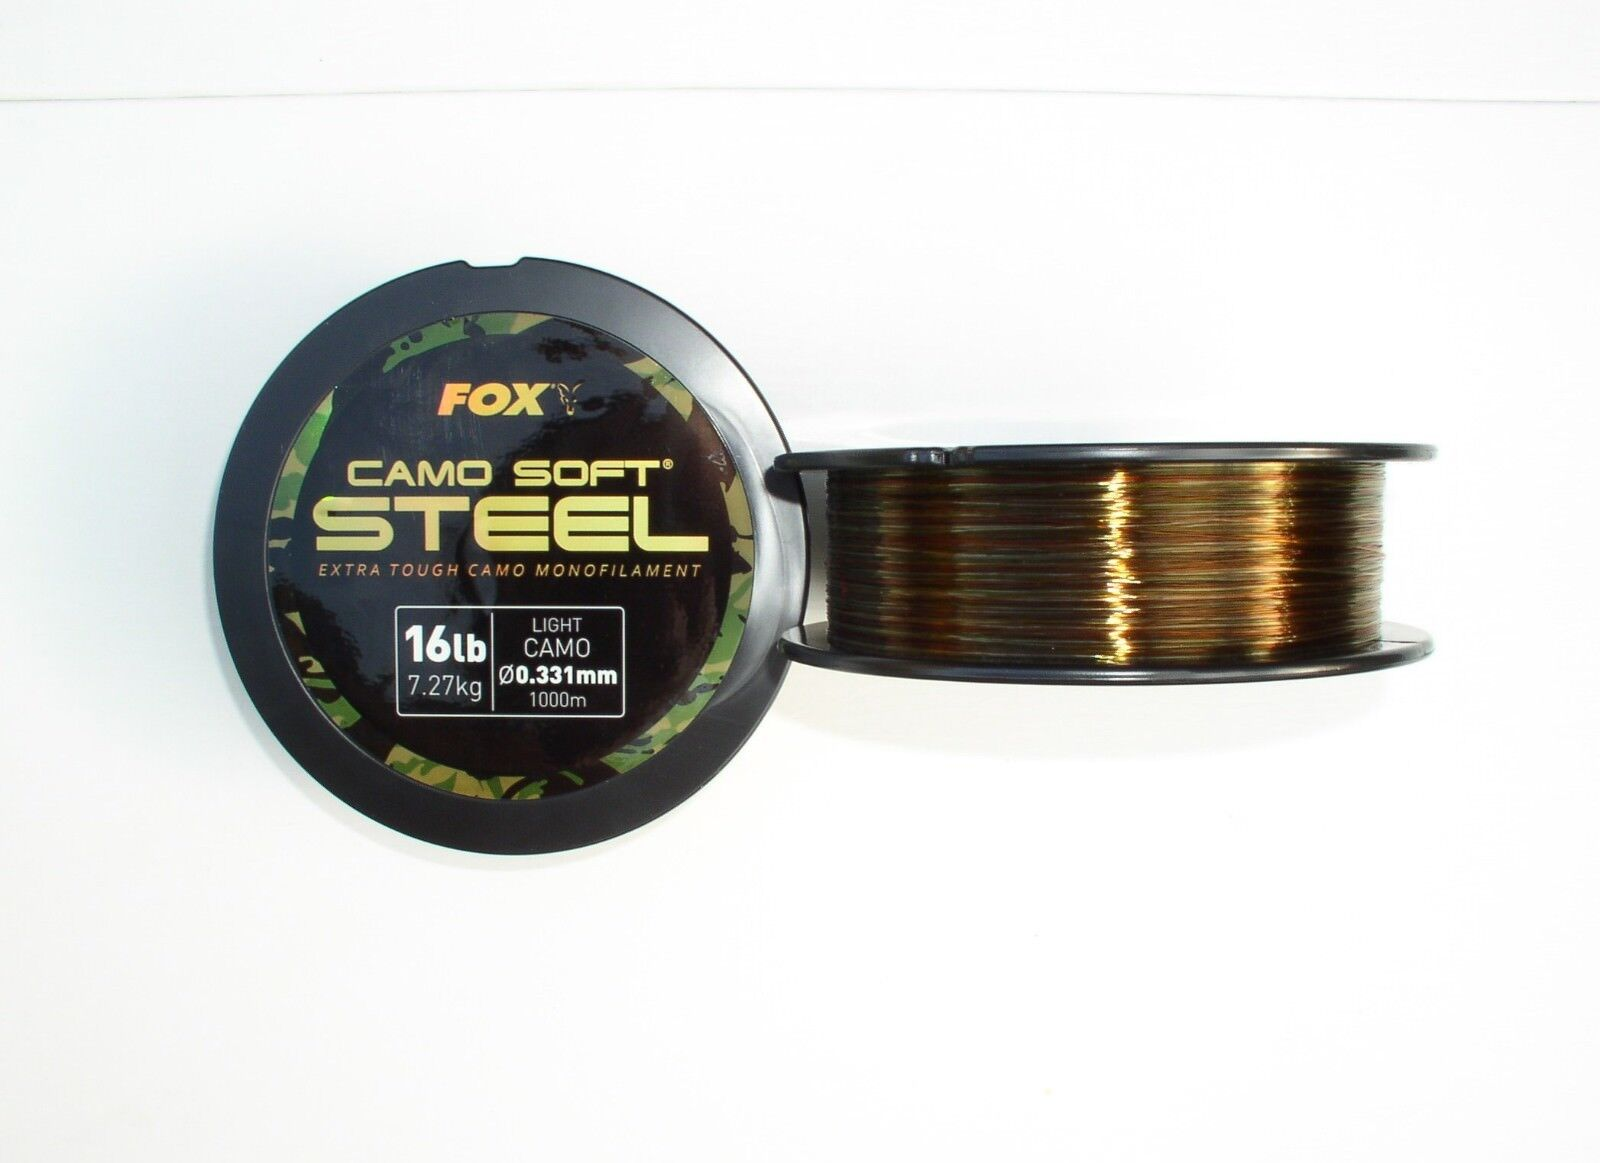 Fox monofile Schnur Camo Soft Steel - 0,35mm  18lbs, 1000 Meter Spule, Carp Line